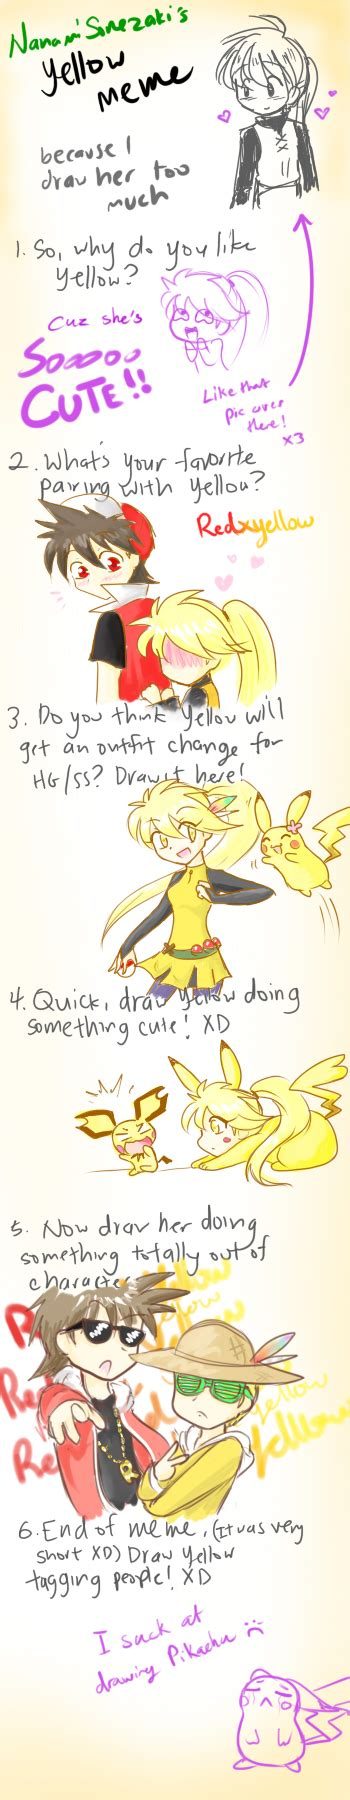 yellow meme by firehorse6 on deviantart